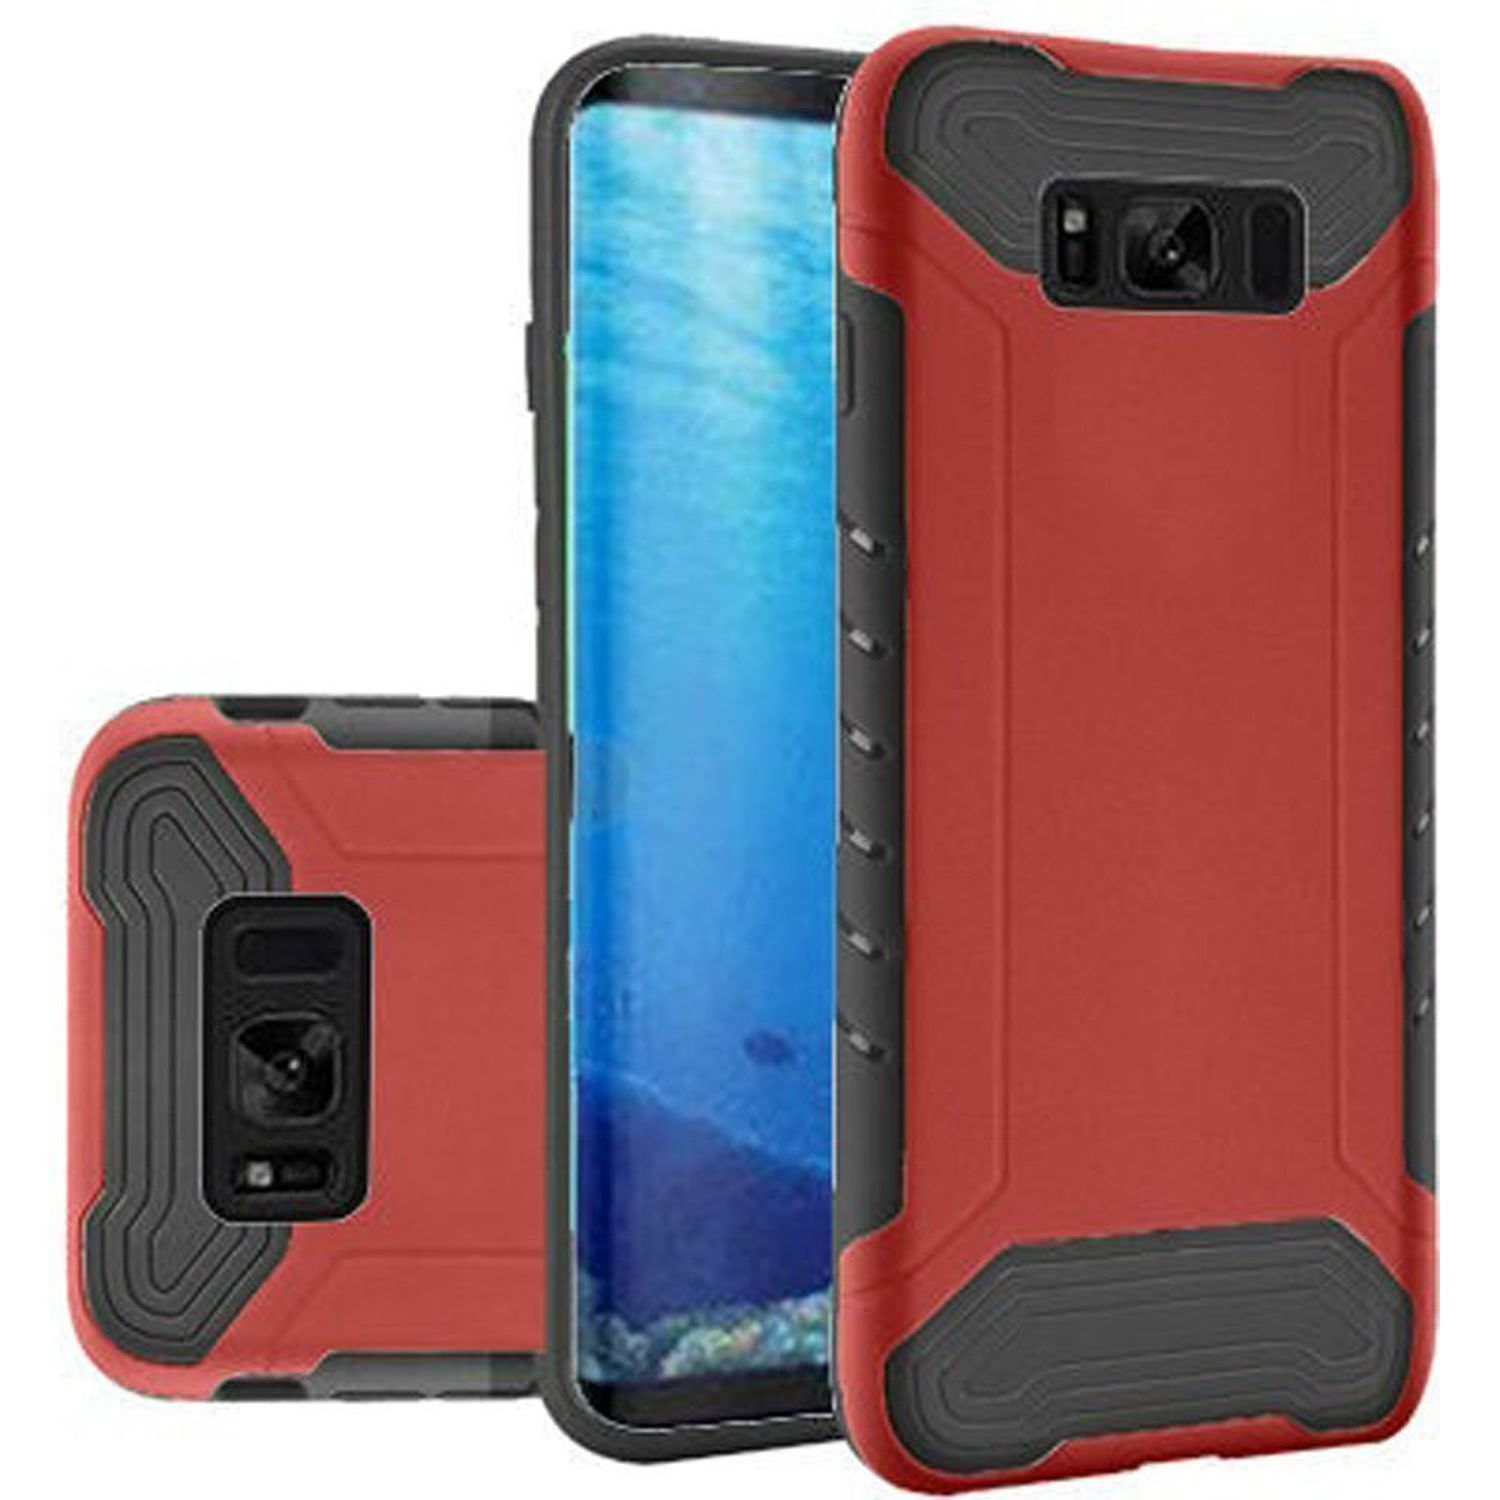 Samsung Galaxy S8 Case, by Insten Slim Armor Dual Layer [Shock Absorbing] Hybrid Hard Plastic/Soft TPU Rubber Case Phone Cover For Samsung Galaxy S8, Red/Black